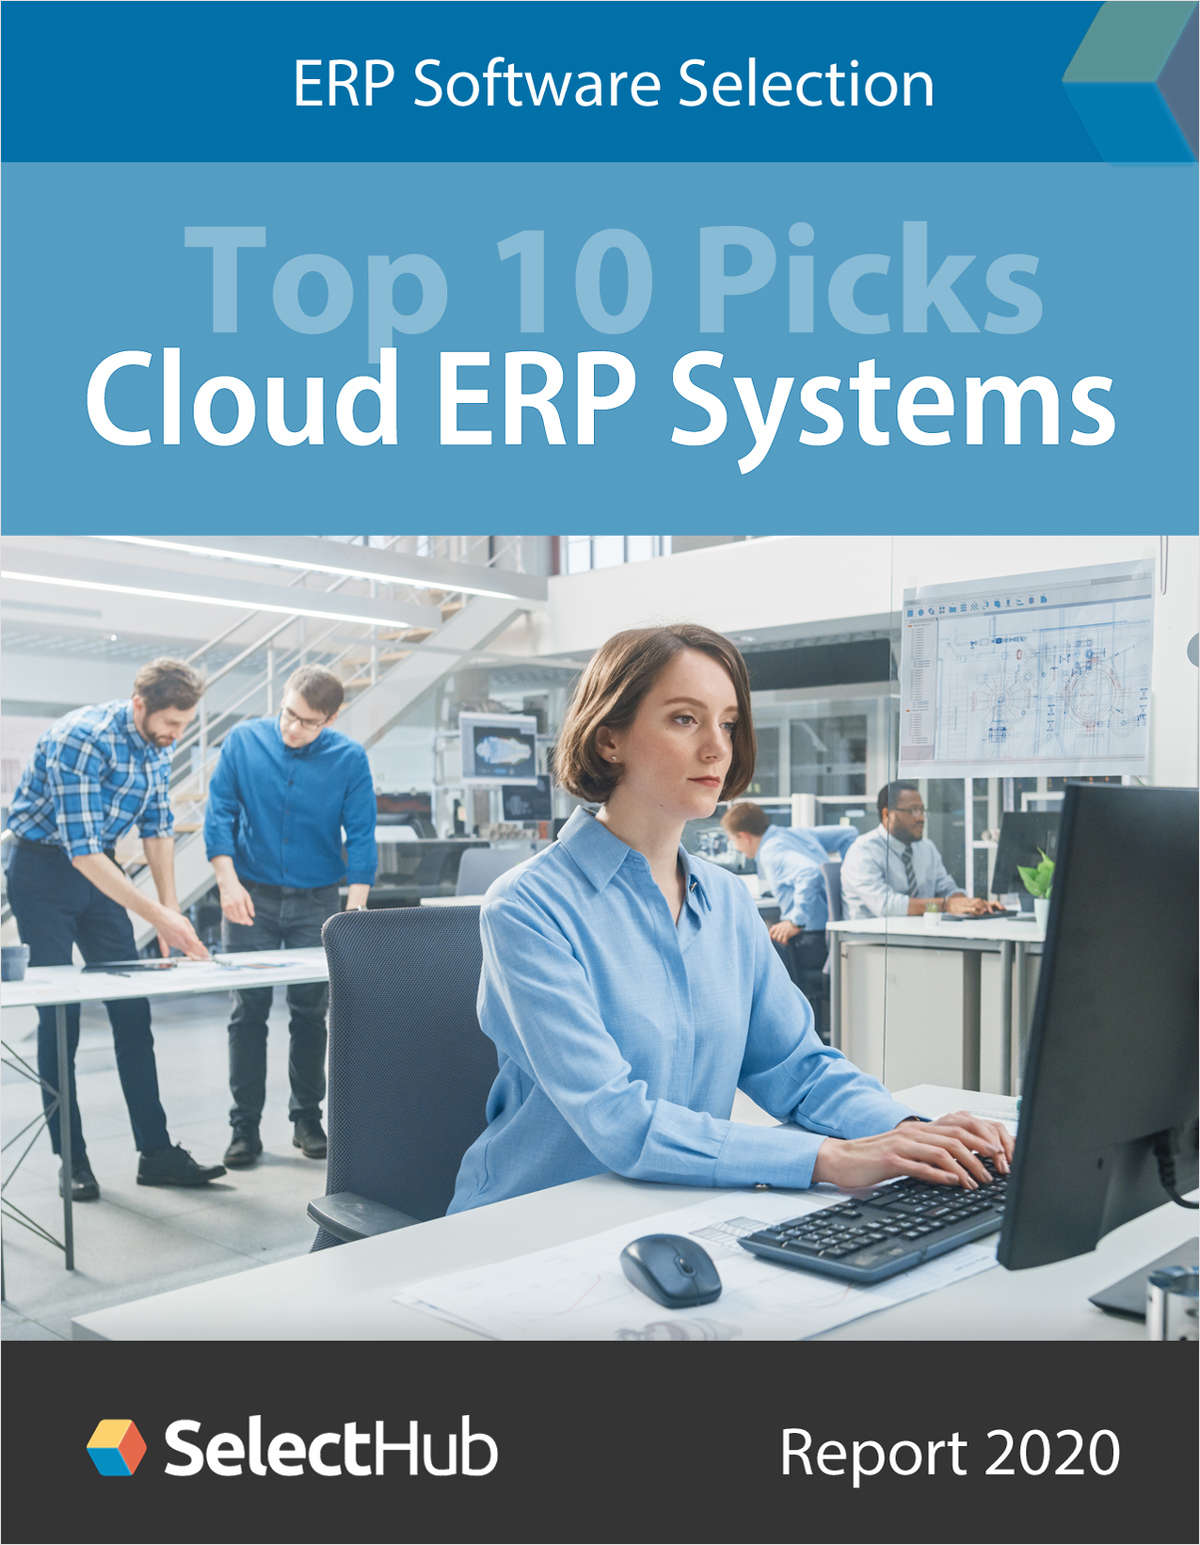 Best Cloud ERP Systems: Top 10 Picks & Vendor Checklist